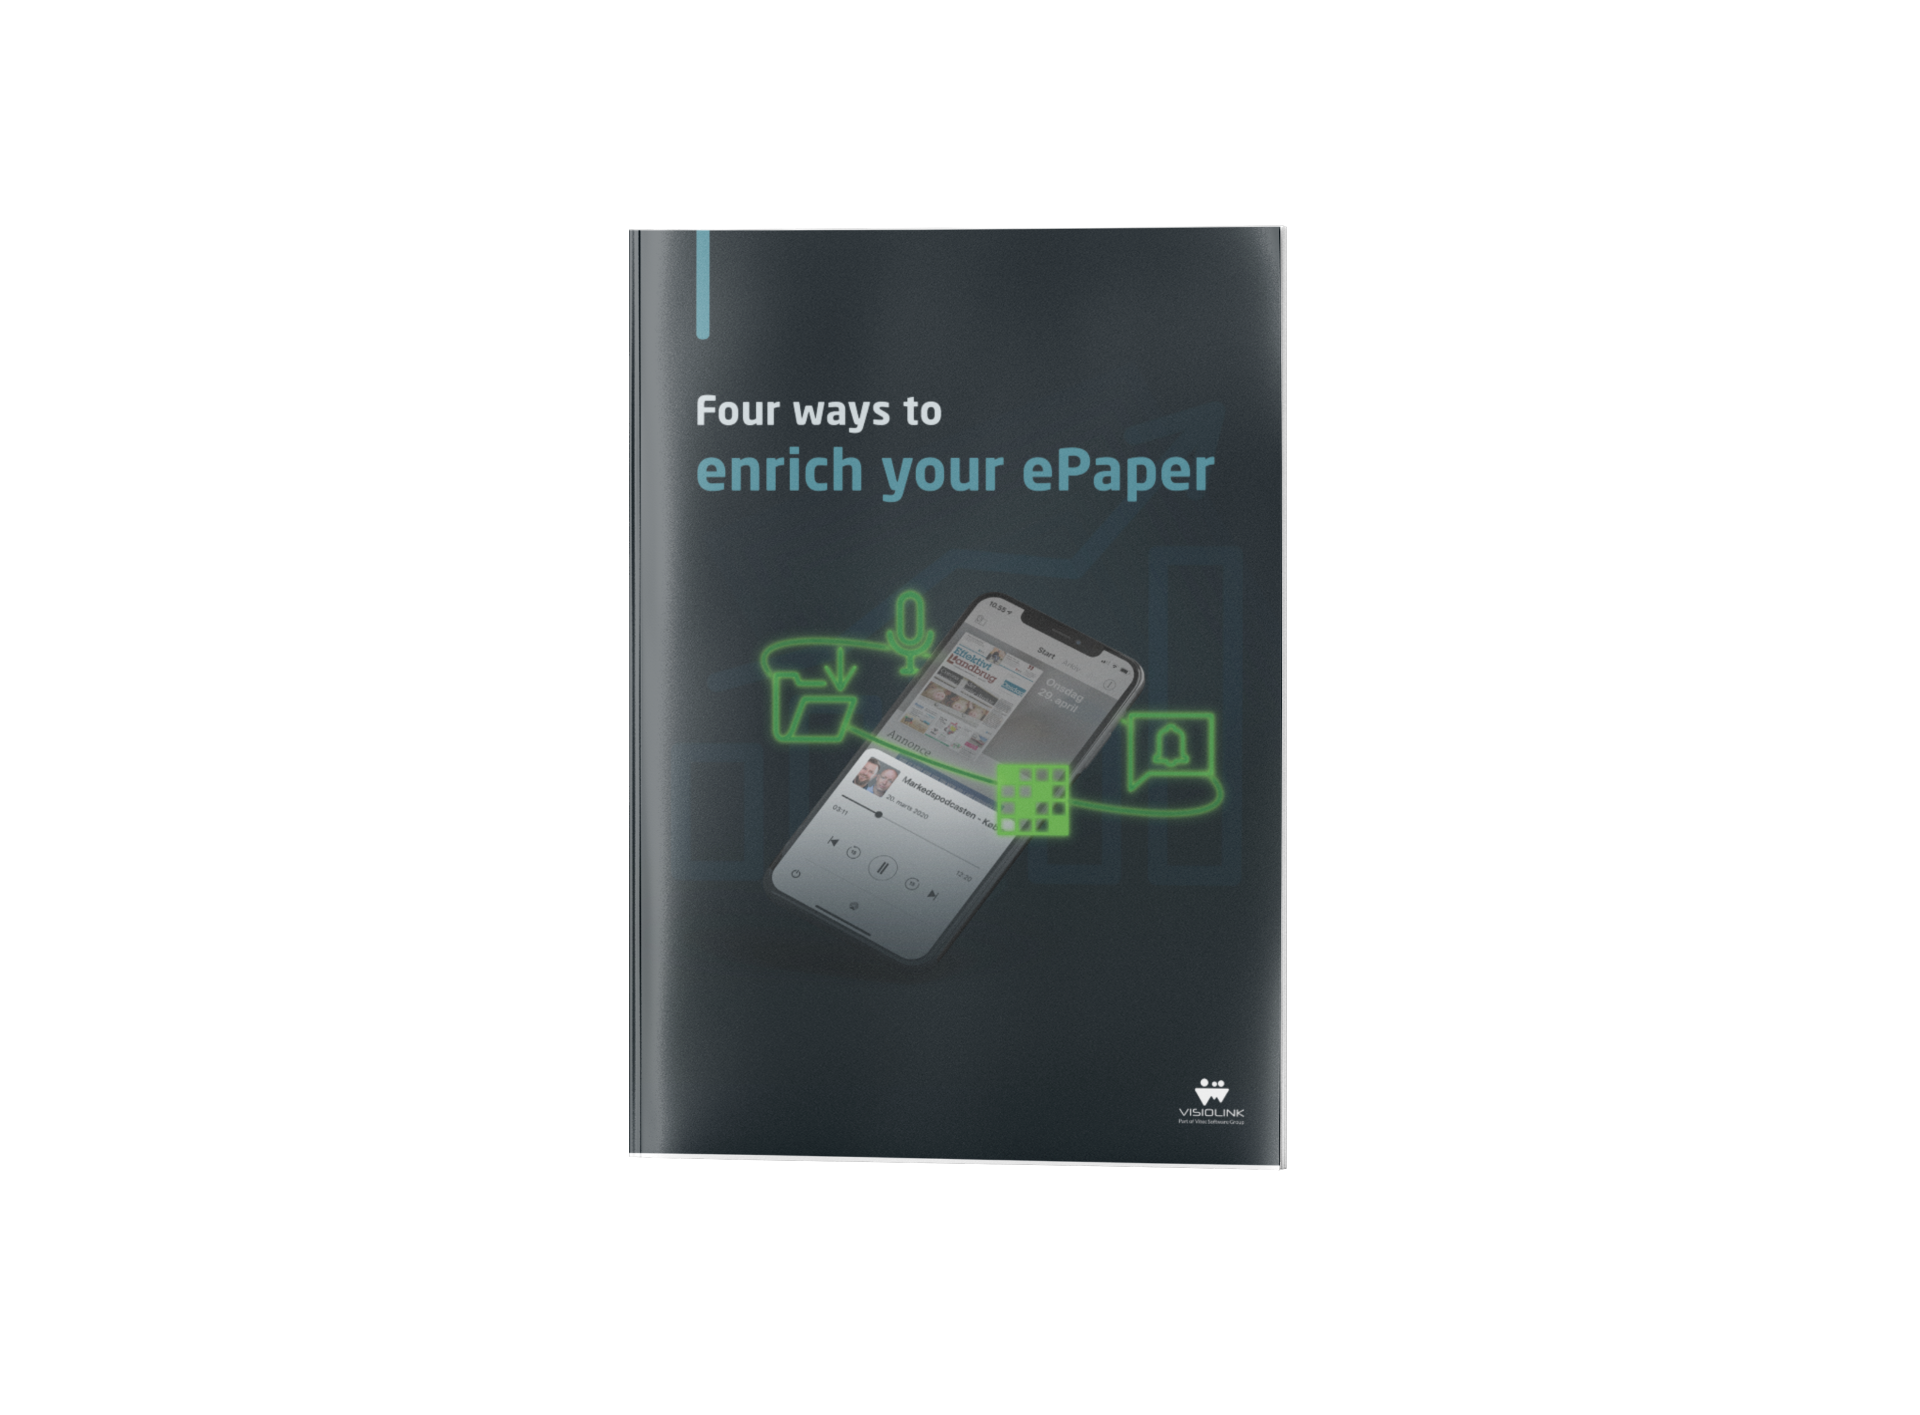 four ways to enrich your epaper-front page